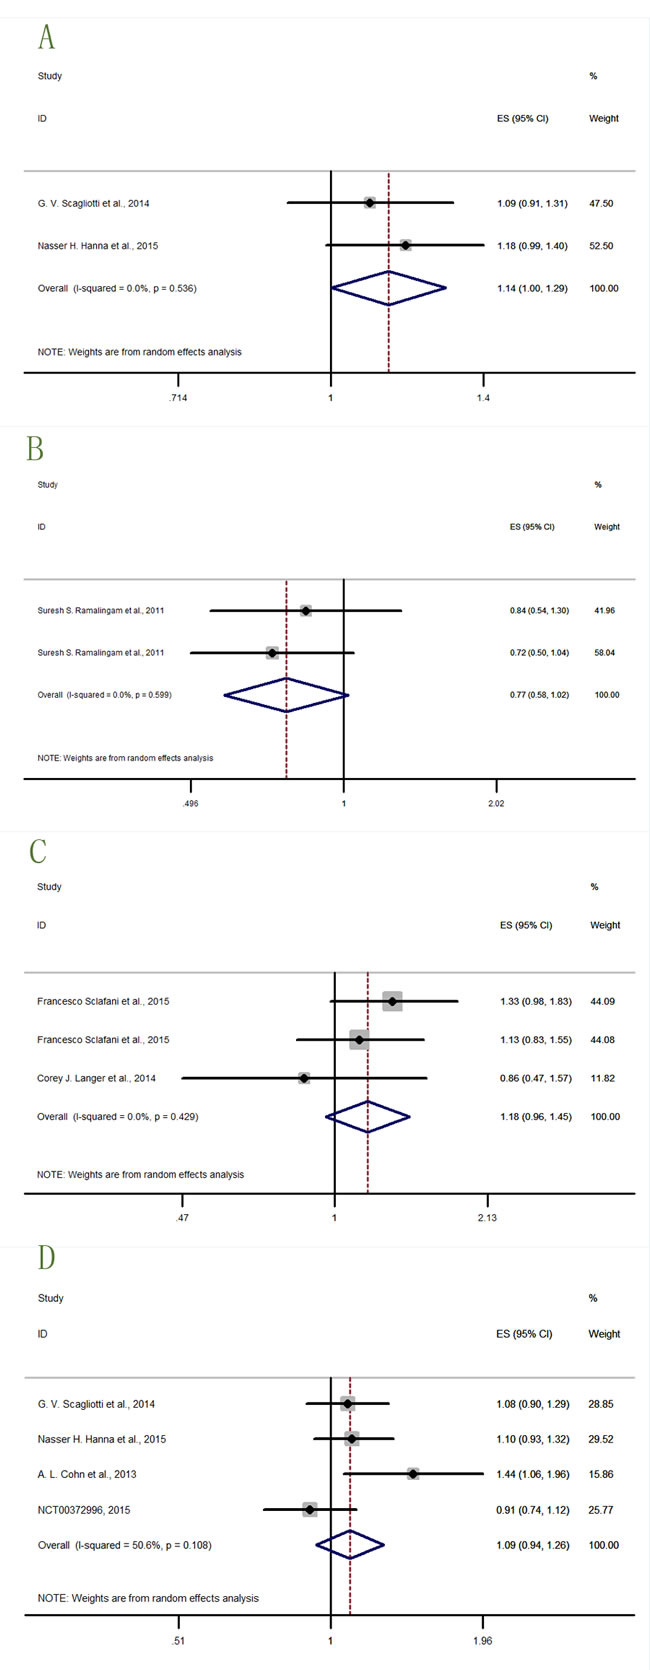 Forest plots of HRs with tendency but without statistical significance for OS or PFS in the subgroups of patients allocated by Anti-IGF1R agents.